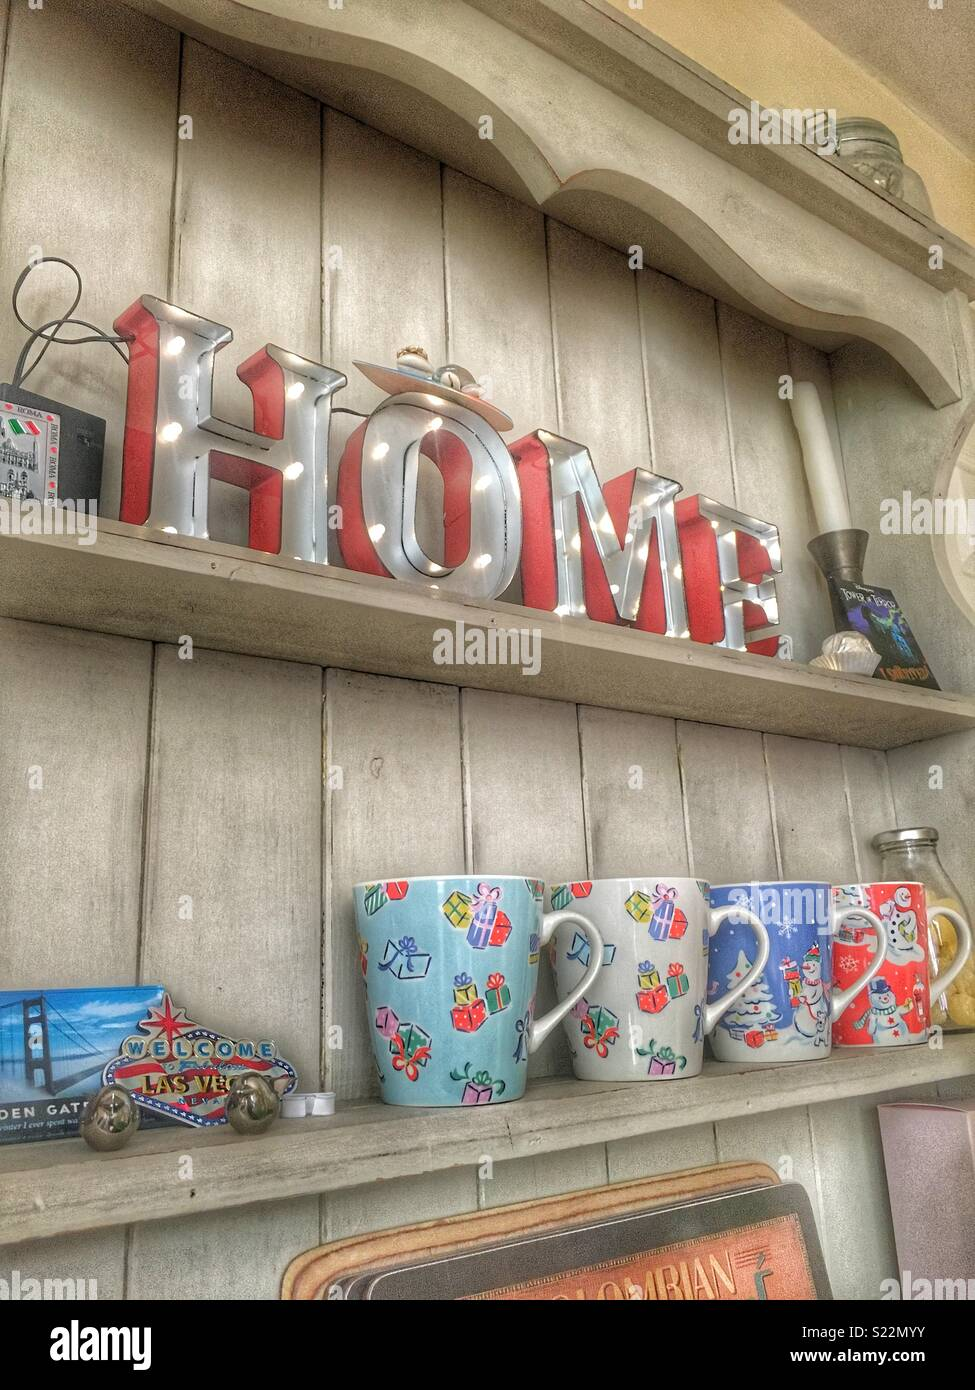 Home sign on a Welsh dresser with nik naks - Stock Image